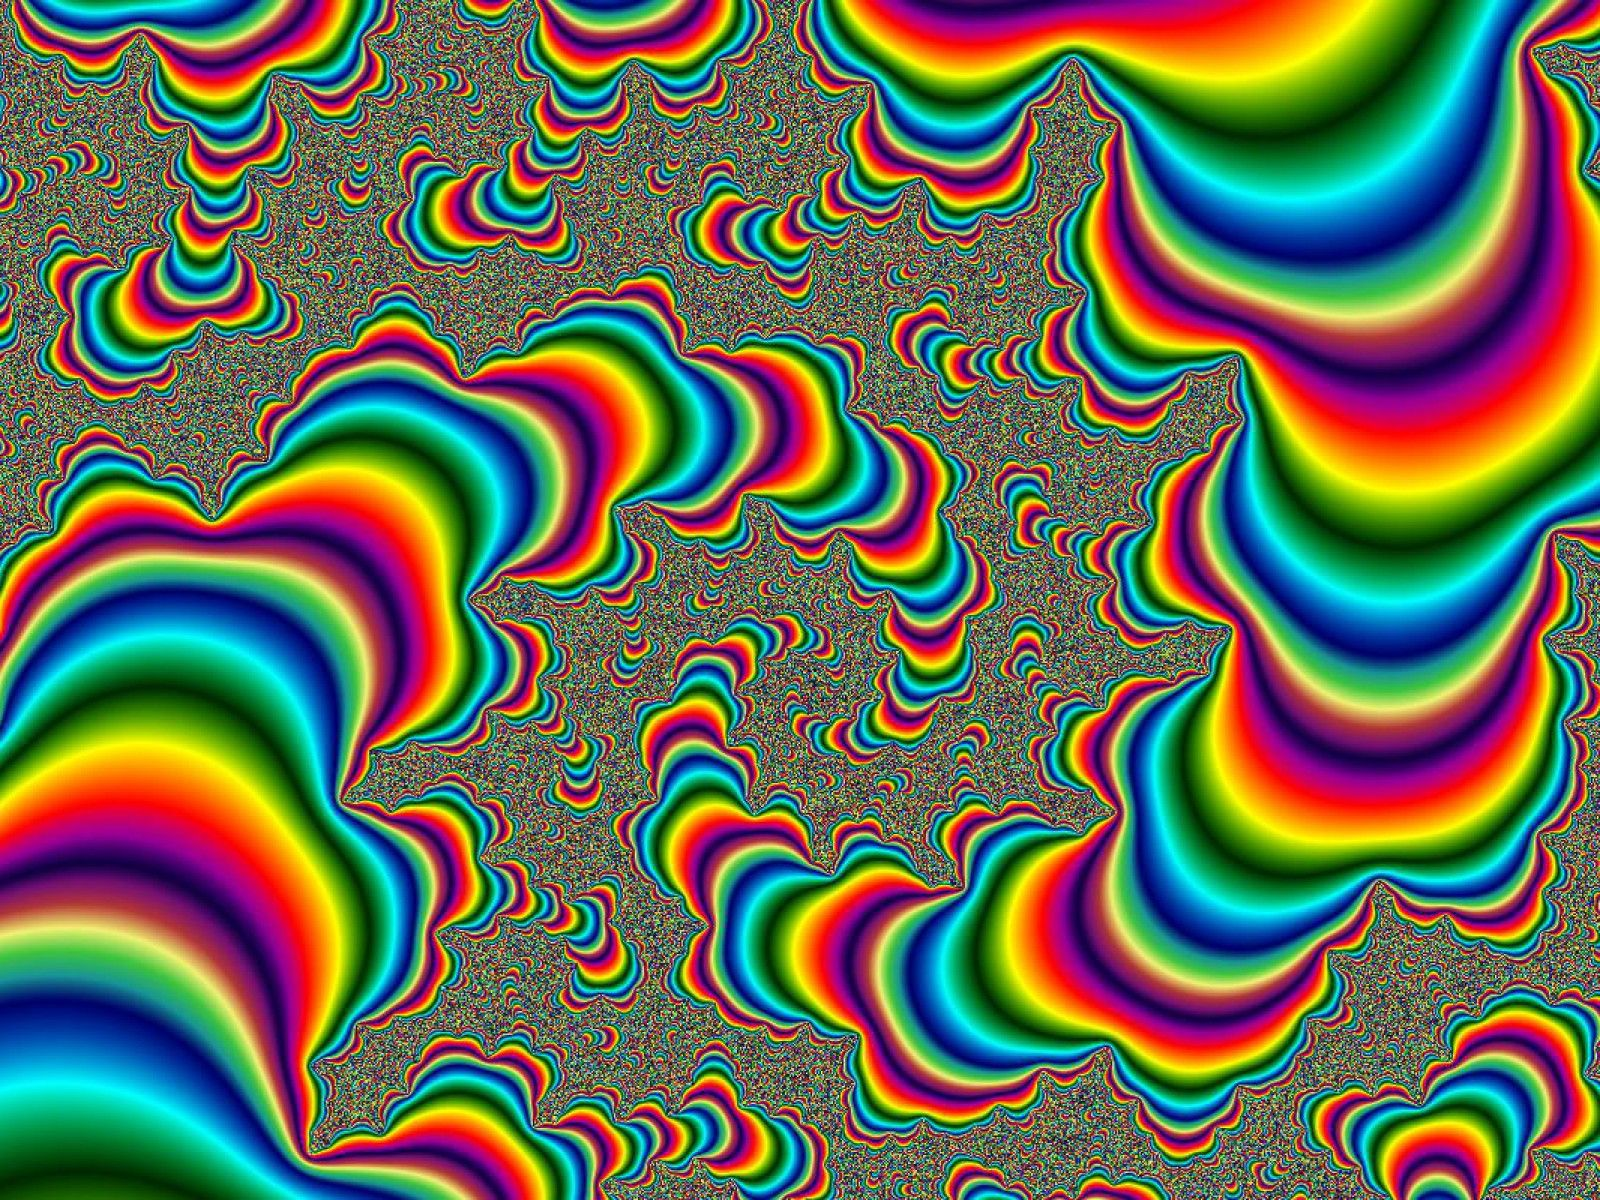 Trippy Moving Illusion...